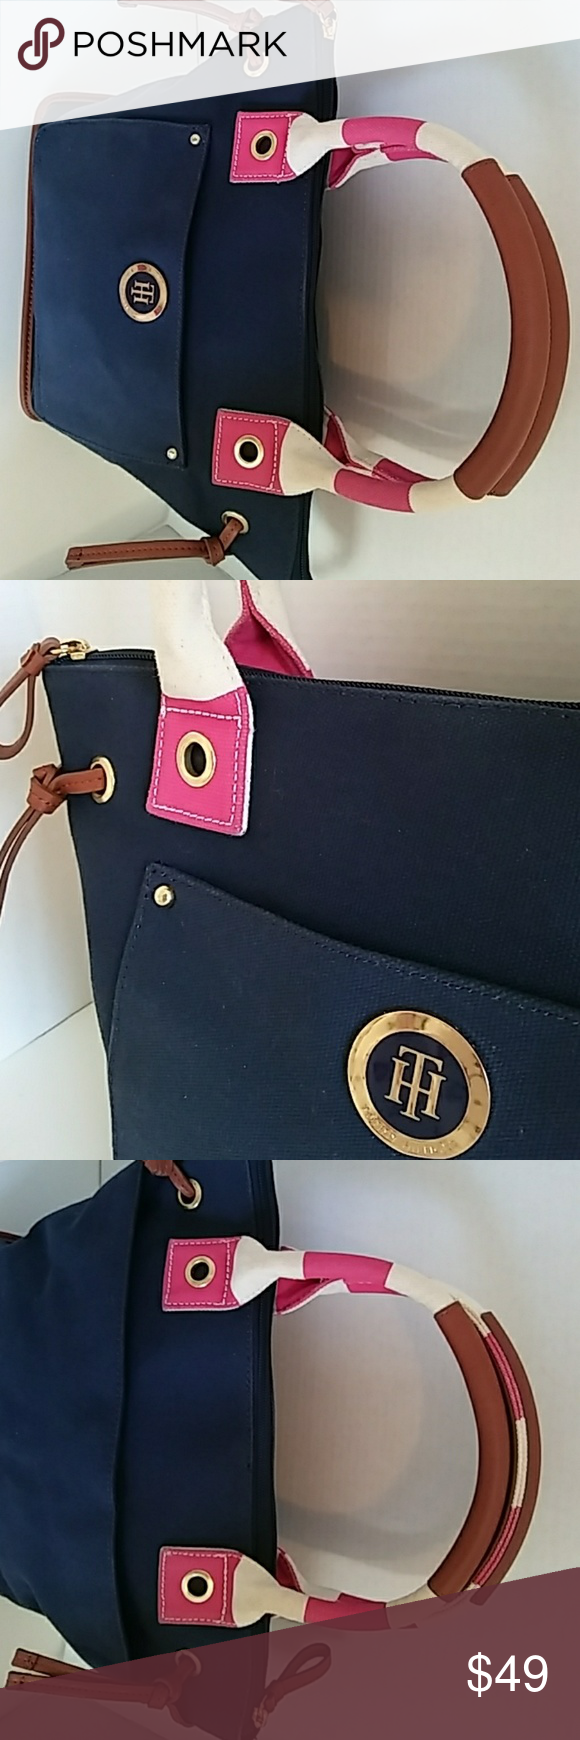 """🔻ONLY$25🔻Tommy Hilfiger CANVAS TOTE SHOULDER BAG Elegant Tomy Hilfiger Canvas Tote Bag. Like New Top Zipper clousure. Imported  😁CLEARANCE  -  ONLY 3 DAYS - FINAL 💓LIKE ME / find me.   🔎@fashionlulys.  .99 cents 🚚 shipping  +  💵 $5  in your balance account - inmediate -  when you download the free Poshmark app on your cell and sign up under INVITE CODE UBCYB""""🚩 (sing up must done trough app) 😁Super-Easy! Tommy Hilfiger Bags"""